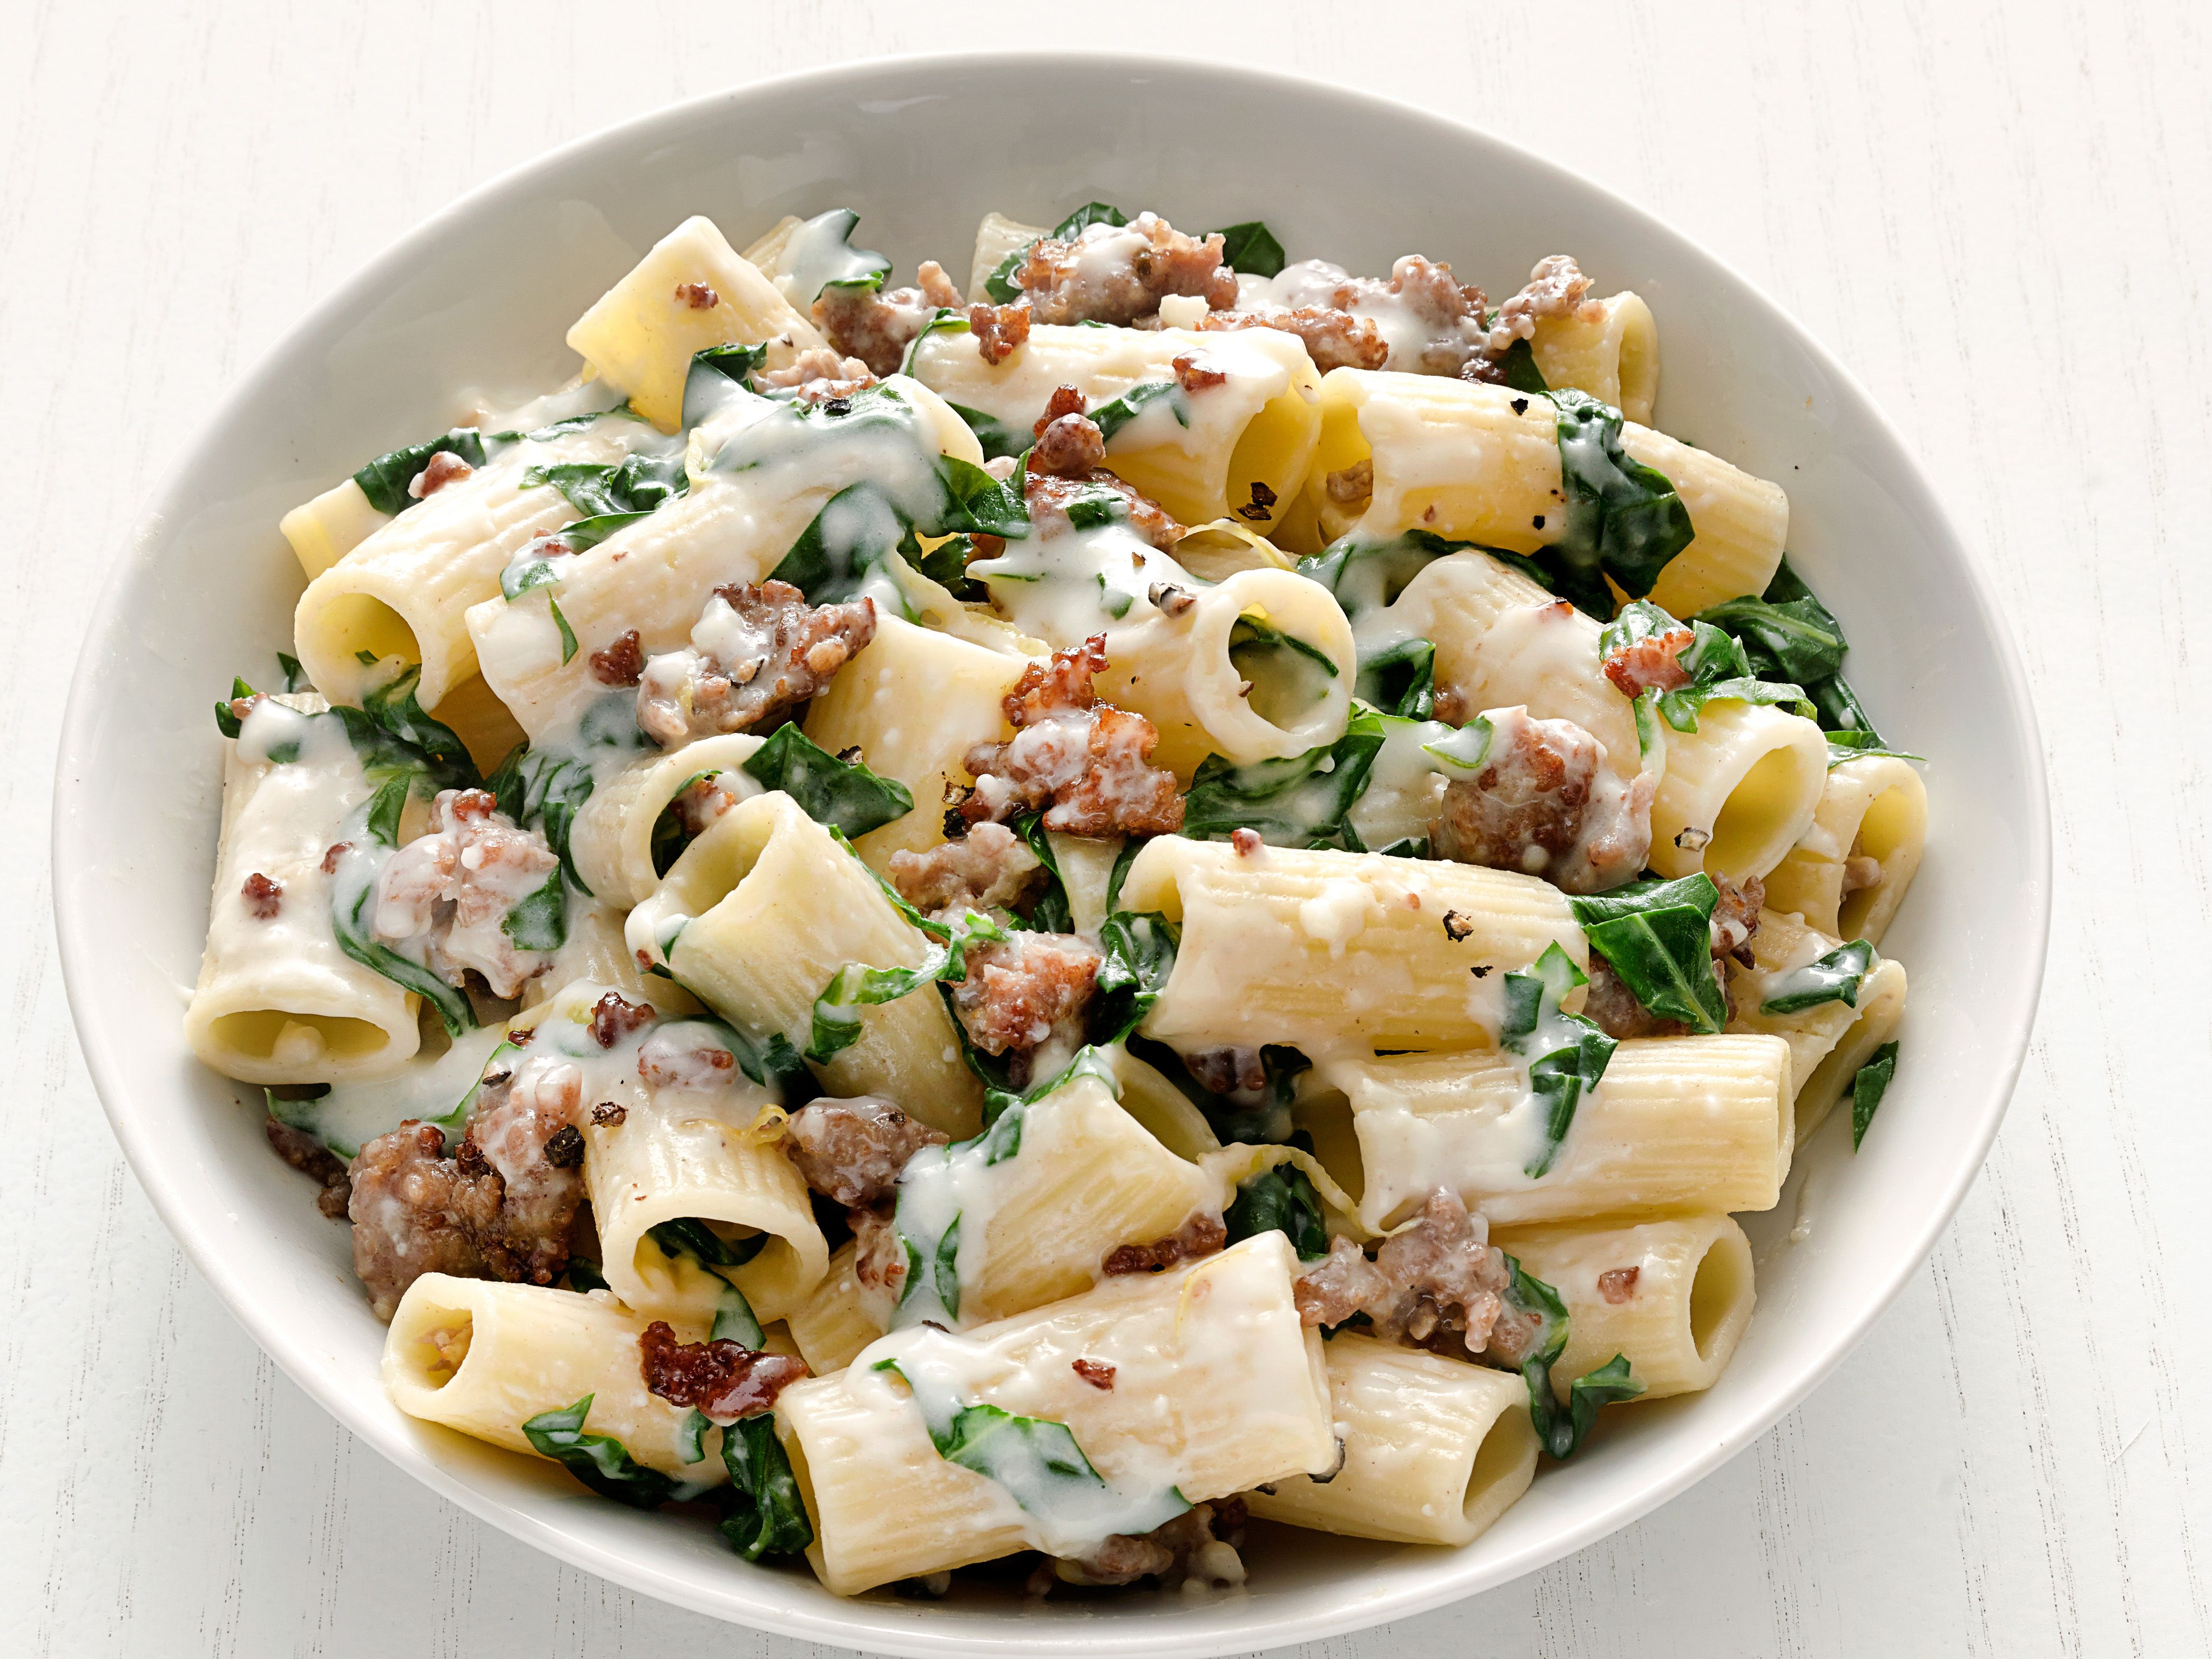 Rigatoni with swiss chard and sausage ricetta bella e cucina rigatoni with swiss chard and sausage rigatoni with swiss chard and sausage recipe food network forumfinder Gallery